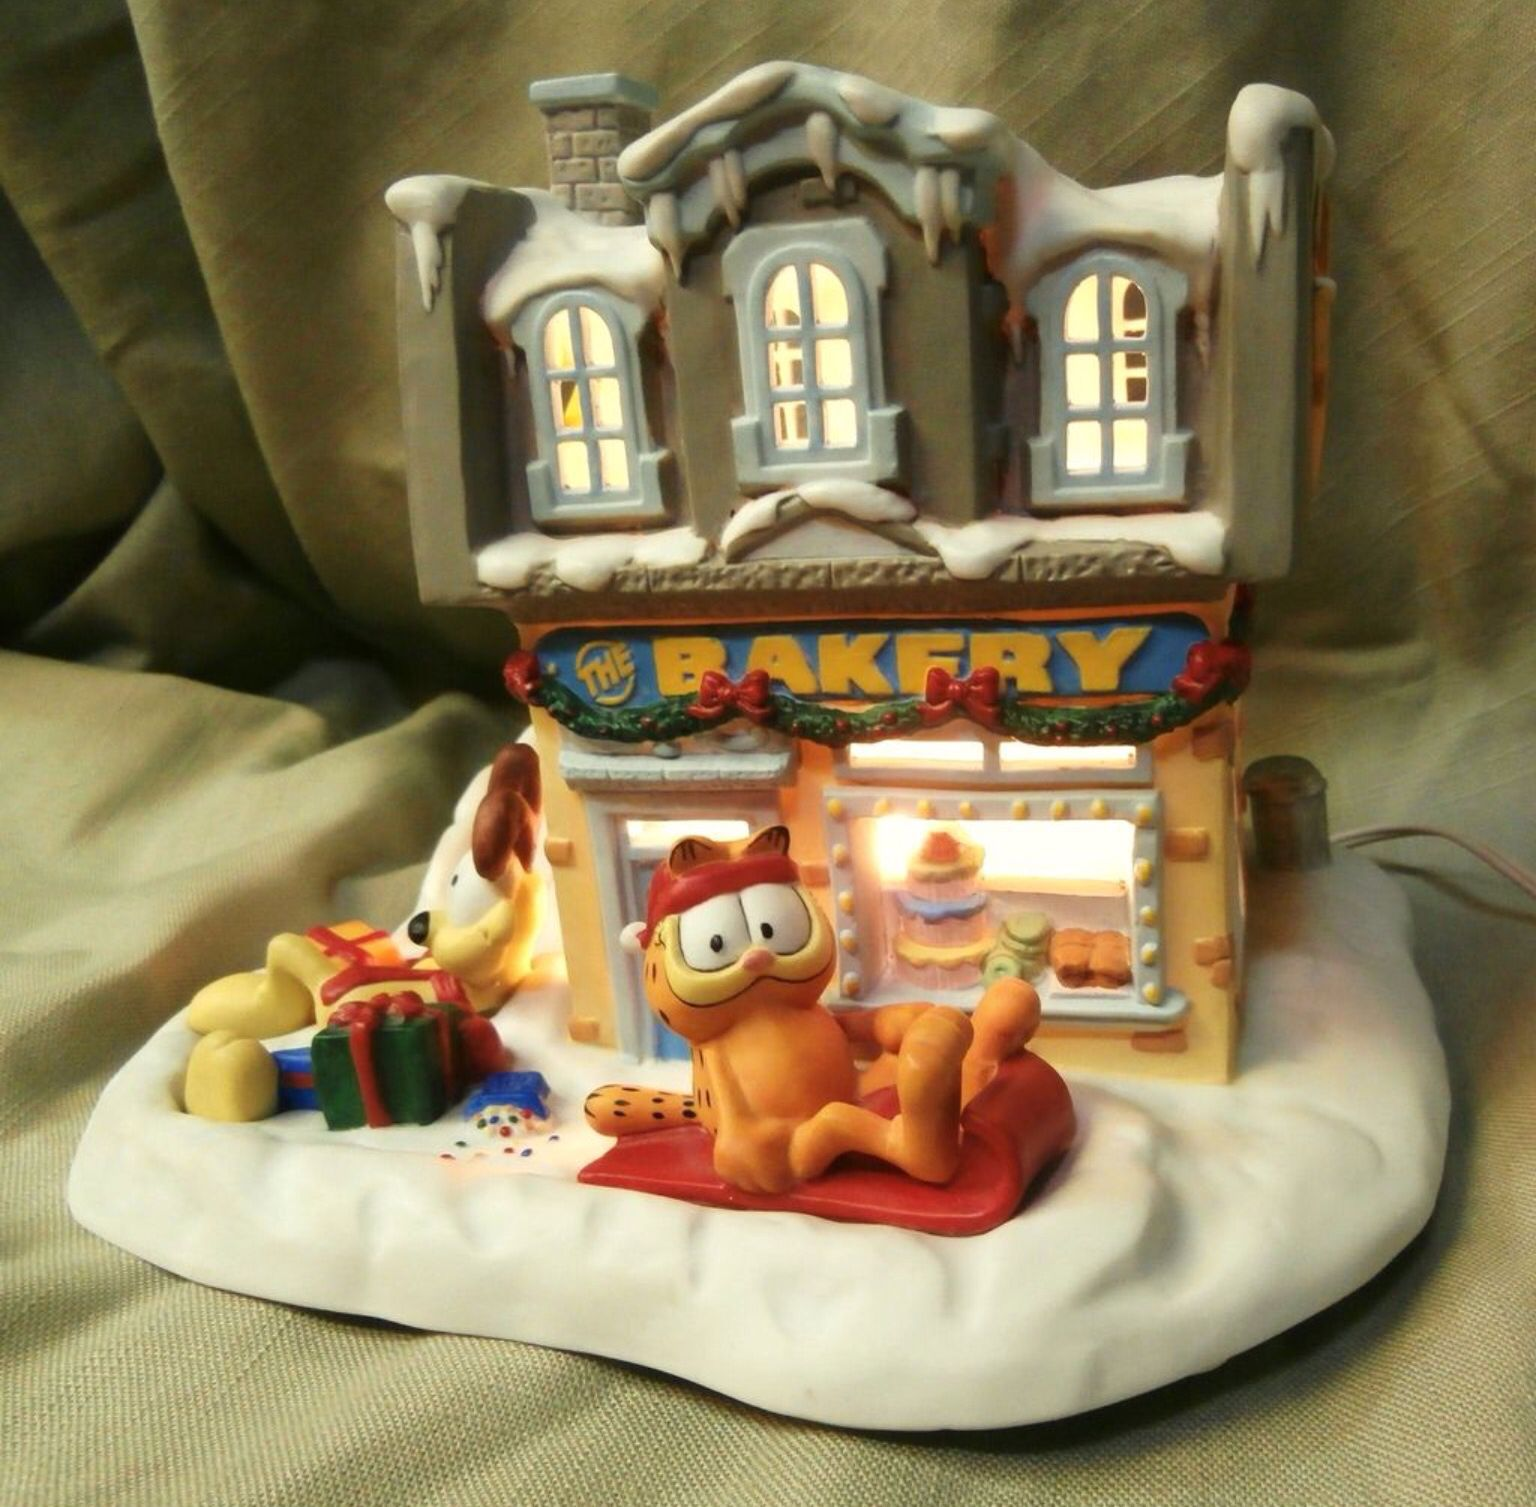 The Bakery Garfield christmas, Christmas villages